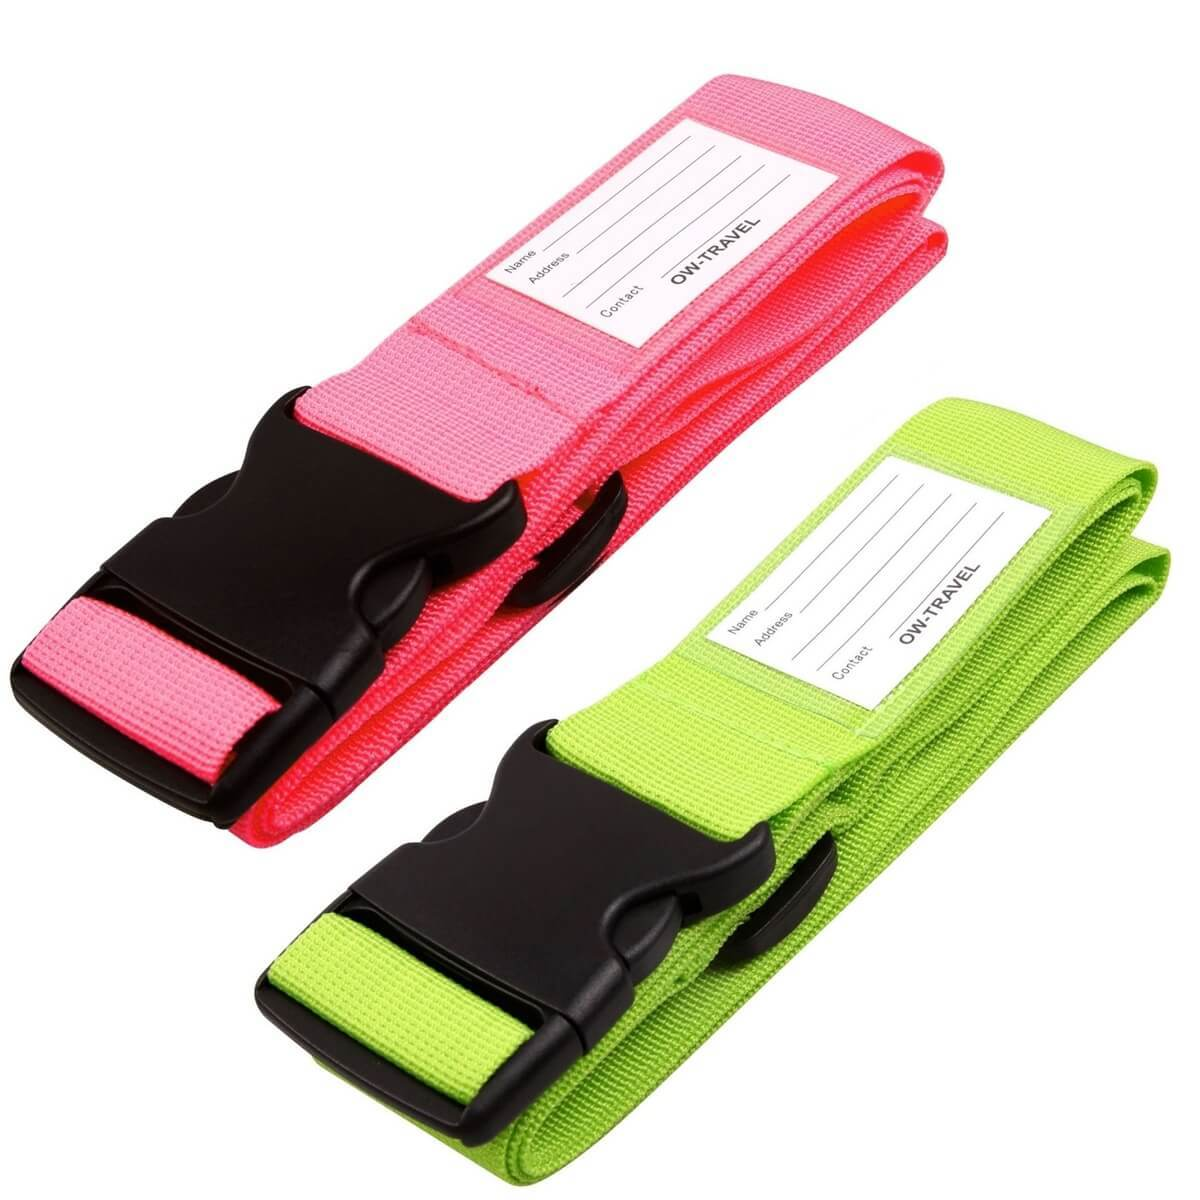 ✅ Heavy Duty Luggage Strap Suitcase Belts - with Personalised Baggage Claim Identifier Address Label (Bright Pink + Bright Green) - One-Wear